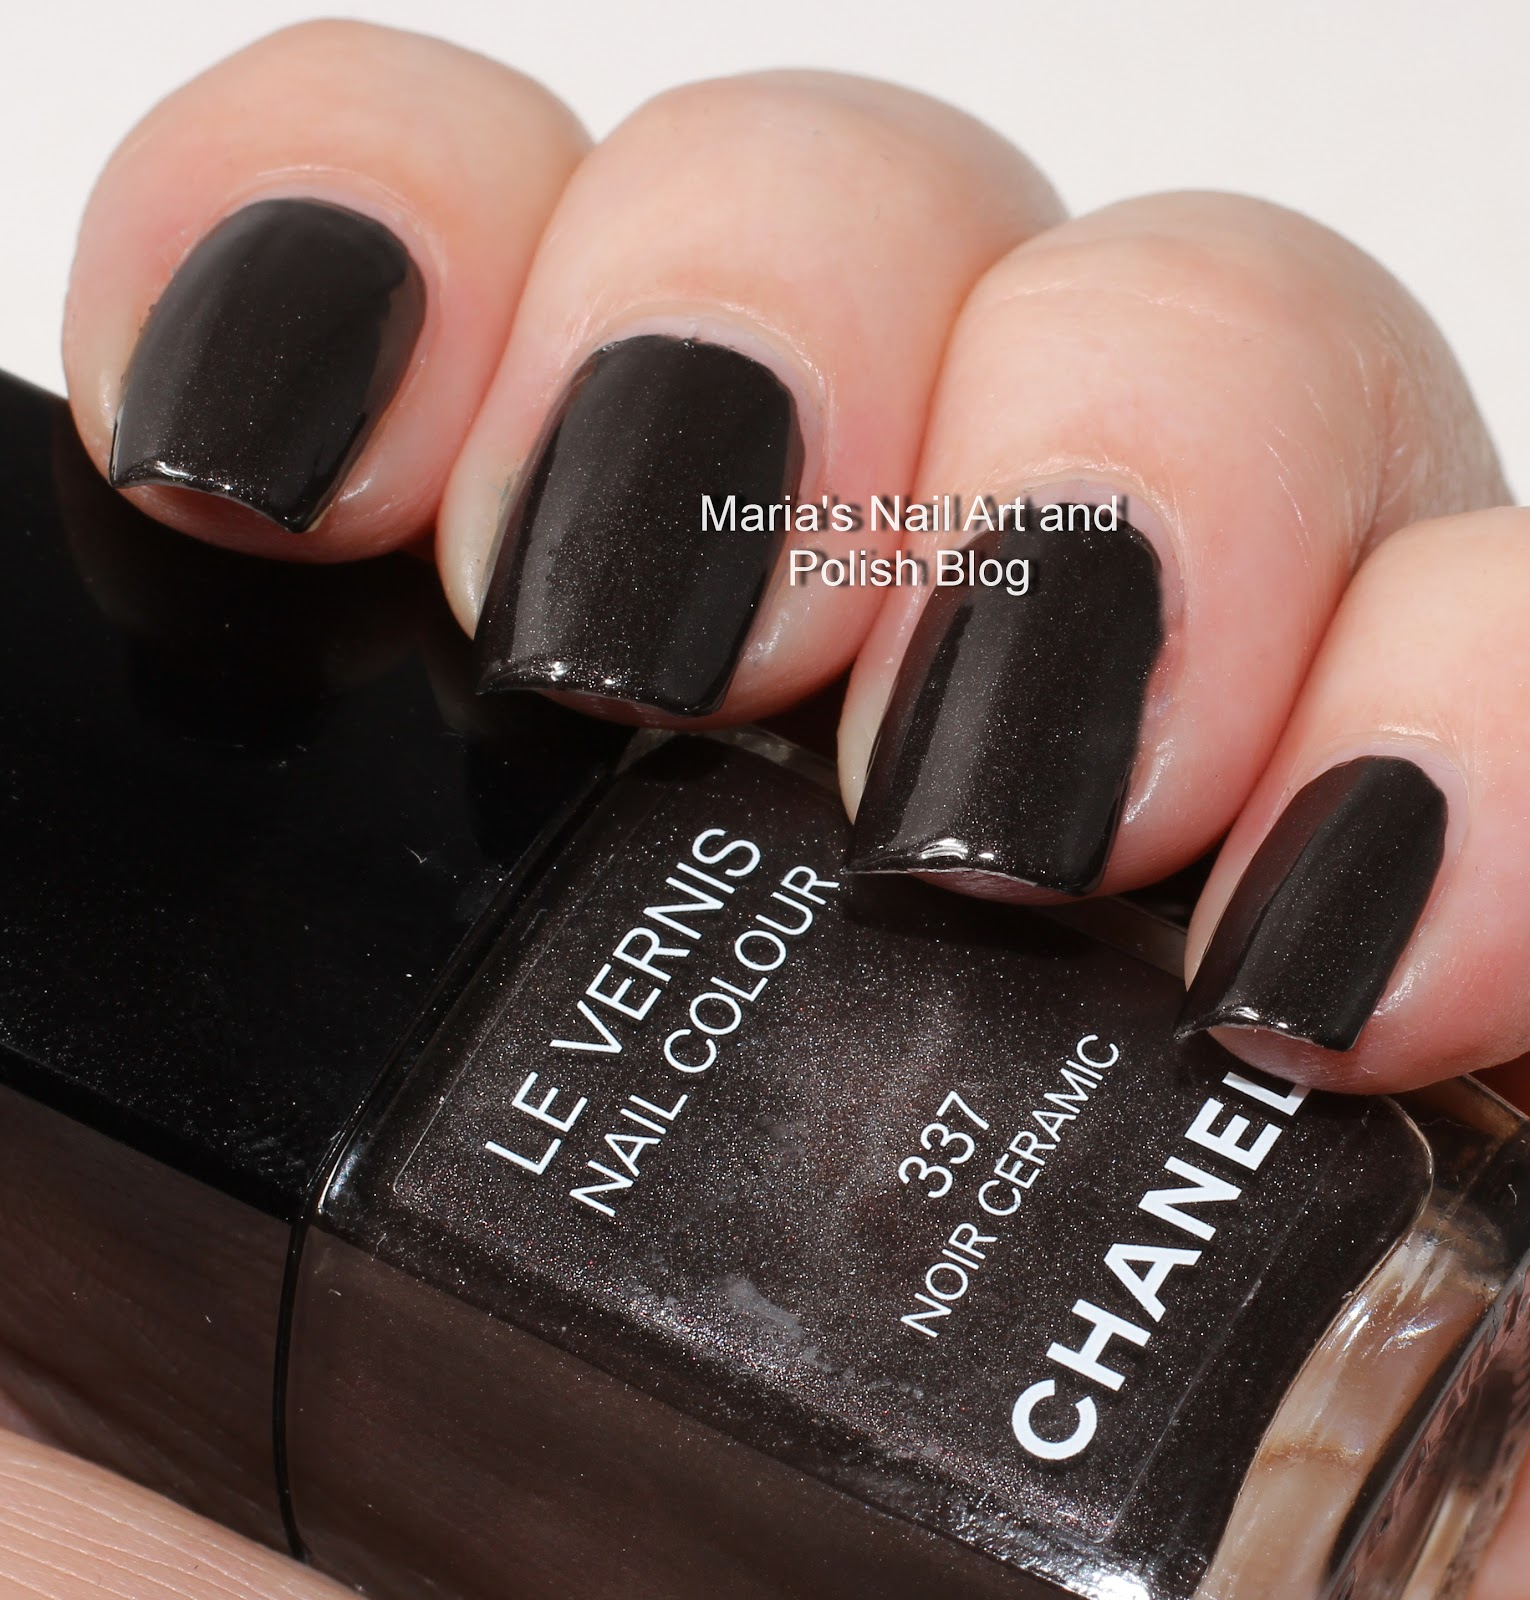 marias nail art and polish blog chanel noir ceramic 337. Black Bedroom Furniture Sets. Home Design Ideas